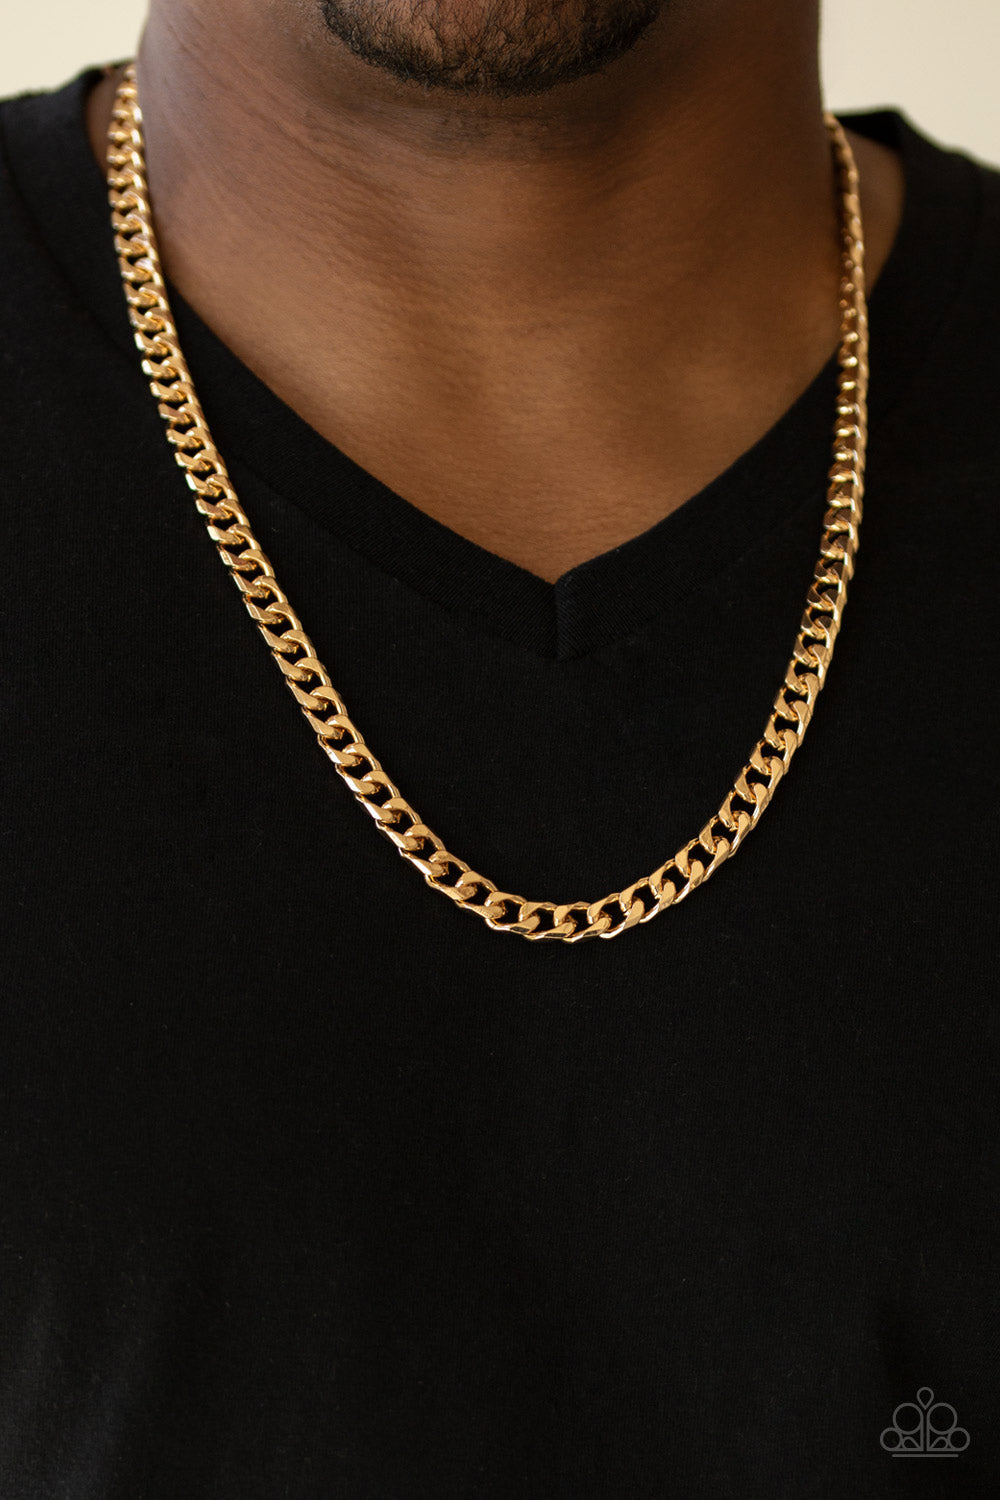 Paparazzi The Game CHAIN-ger Men's Co-Ed Gold Chain Necklace